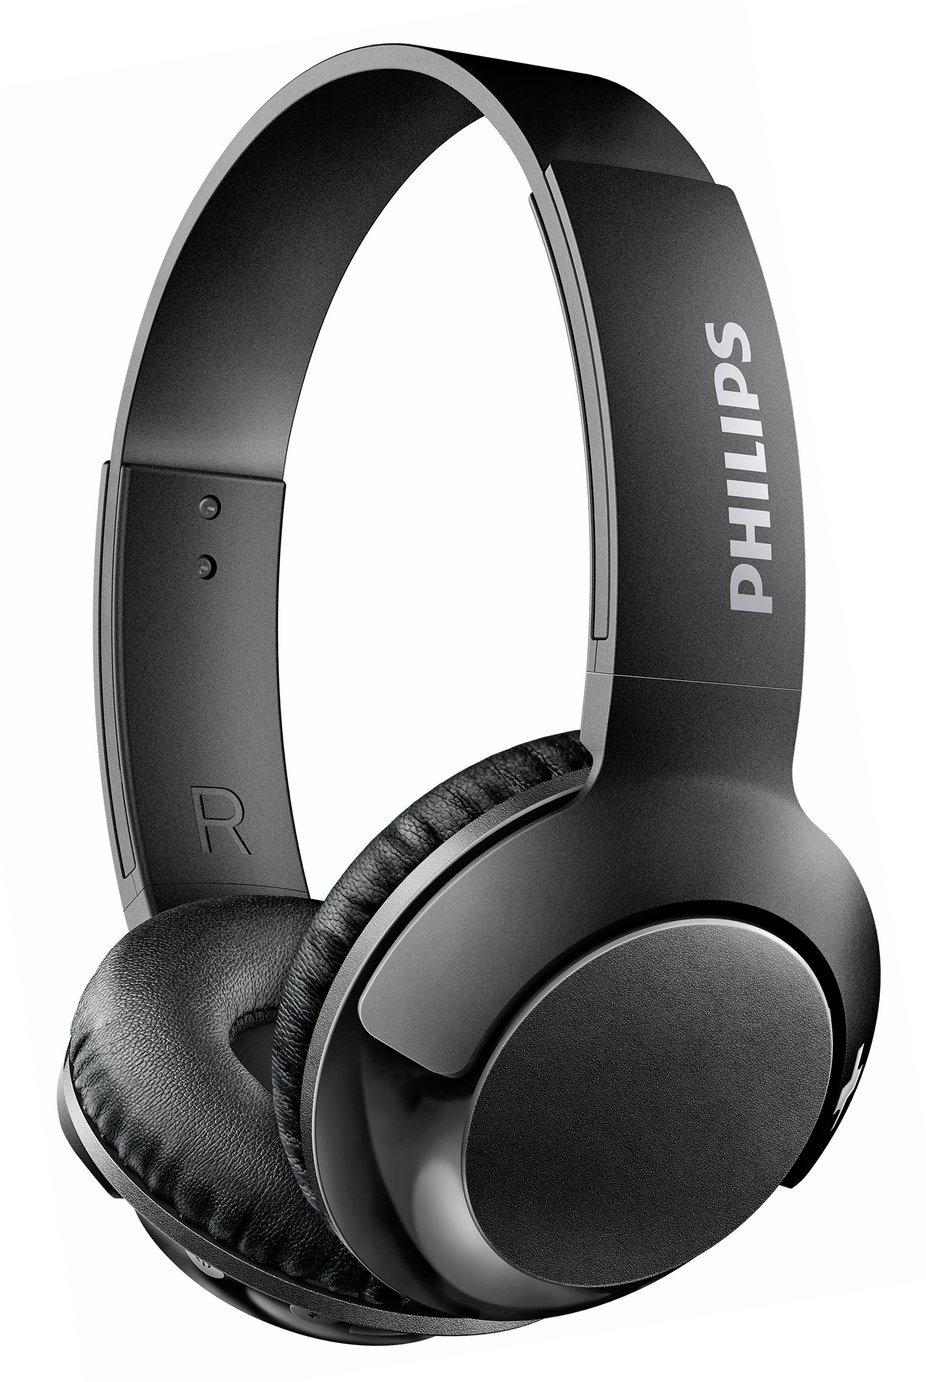 Philips SHB3075 Wireless On-Ear Headphones review